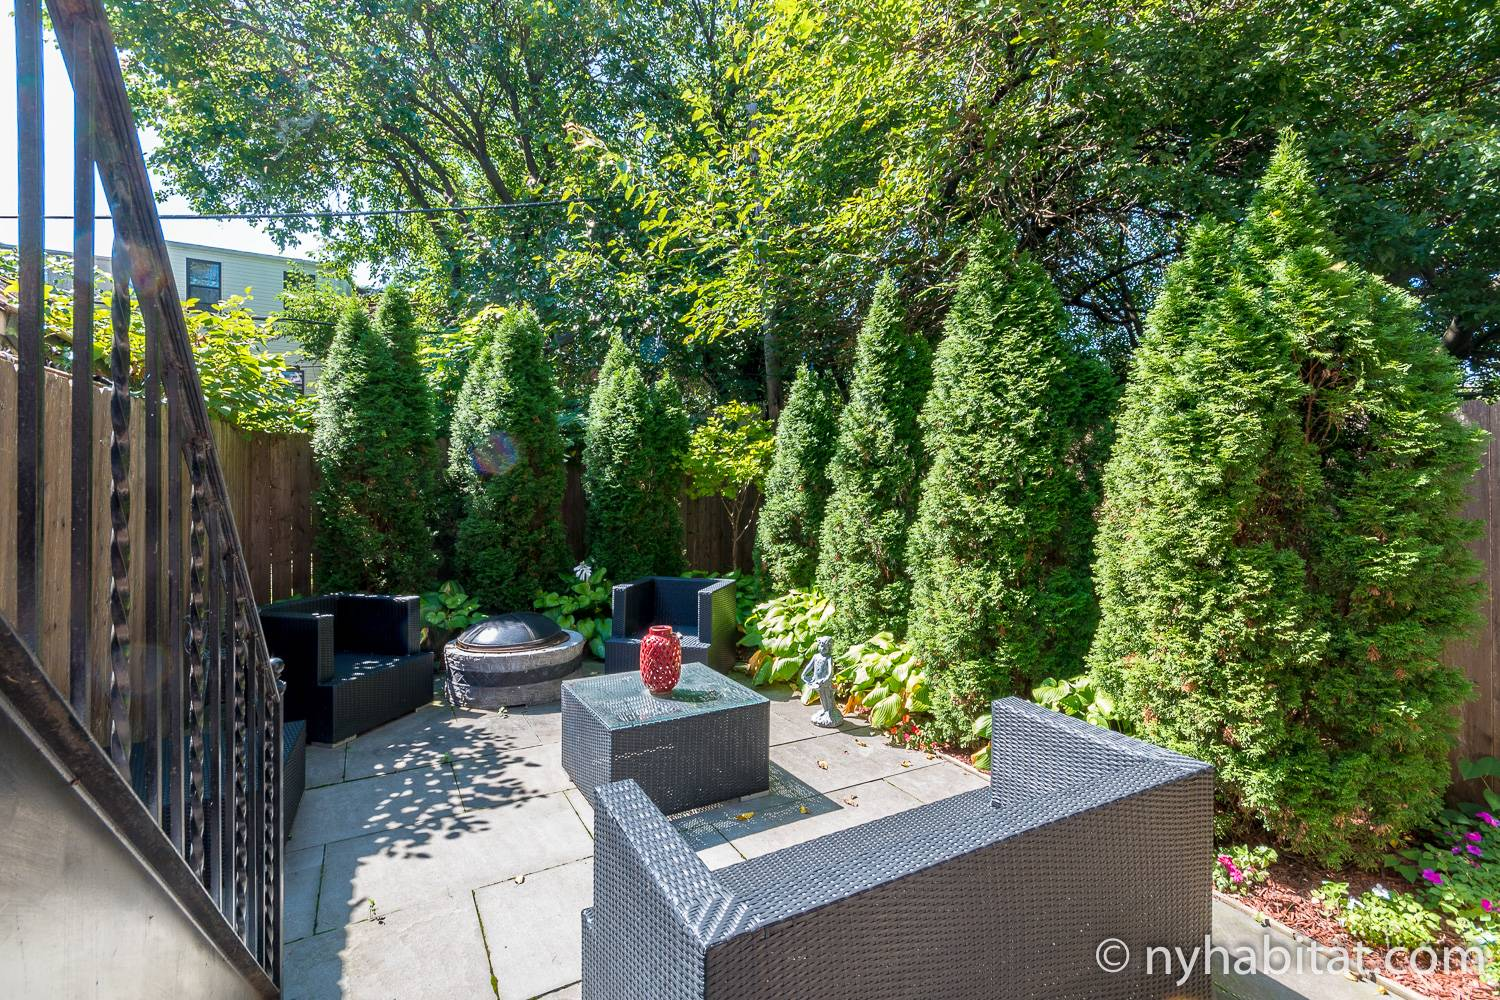 Image of garden with seating and evergreen trees at NY-18025 in Bedford Stuyvesant, Brooklyn